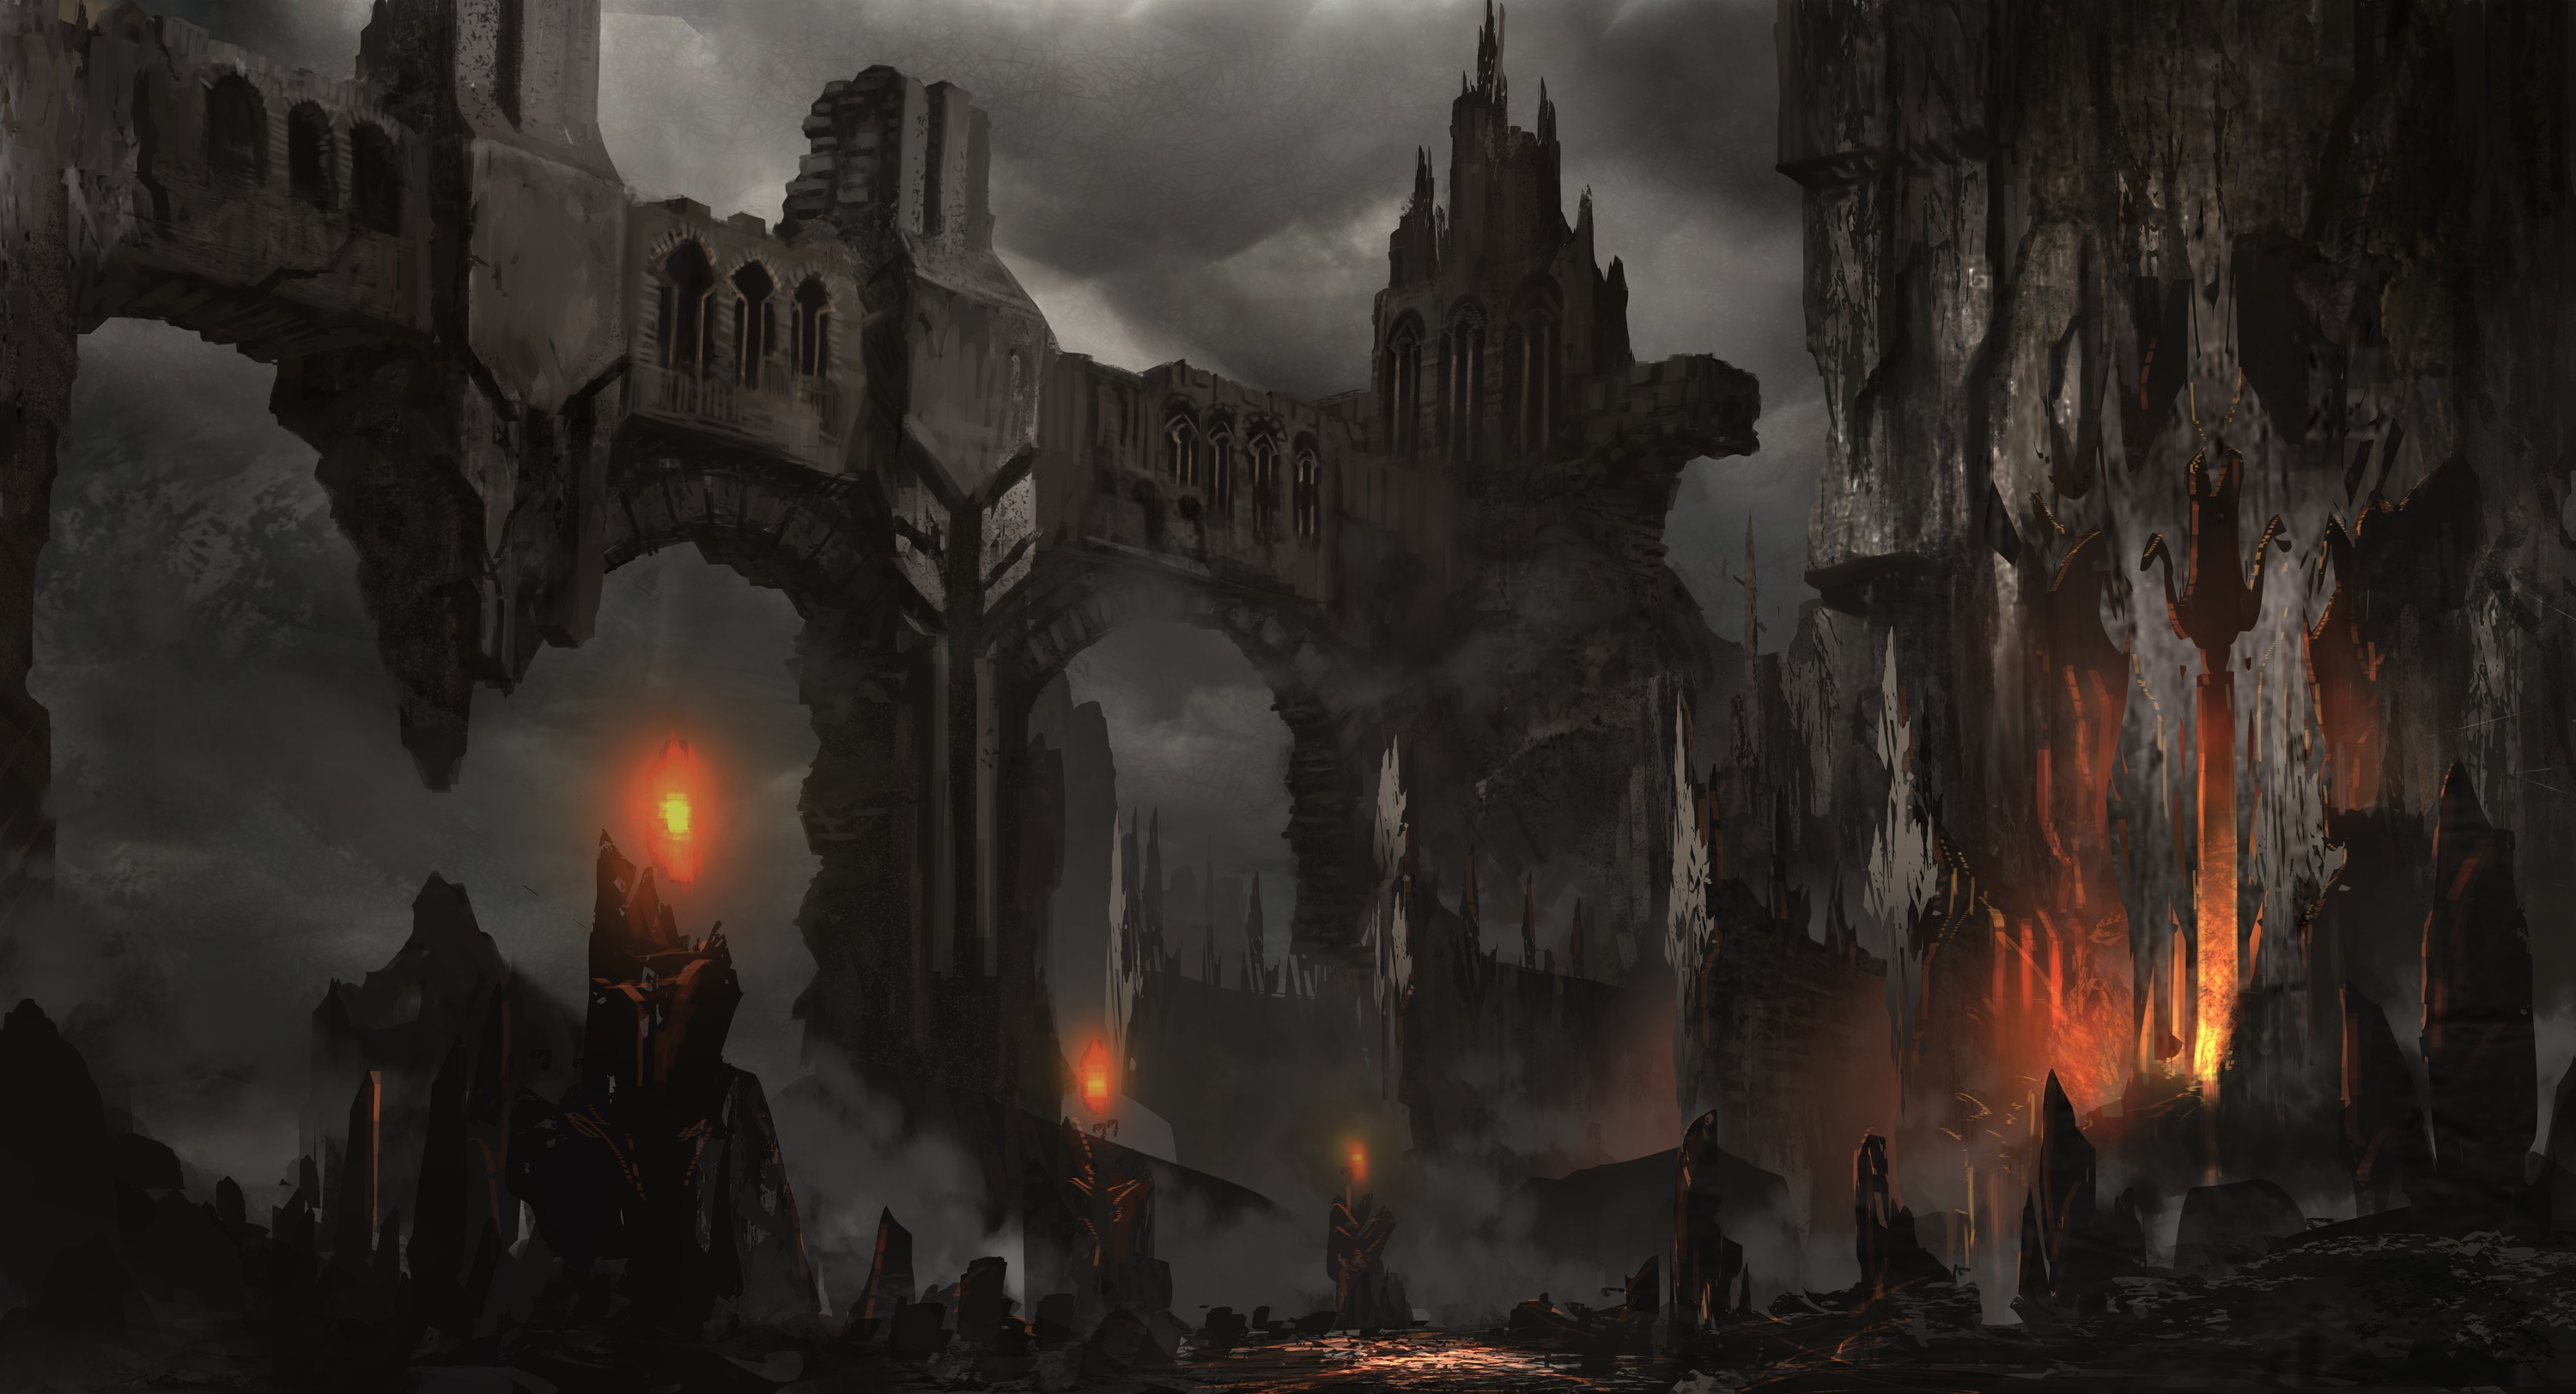 Fantasy art landscapes decay ruins castle fire dark horror ...